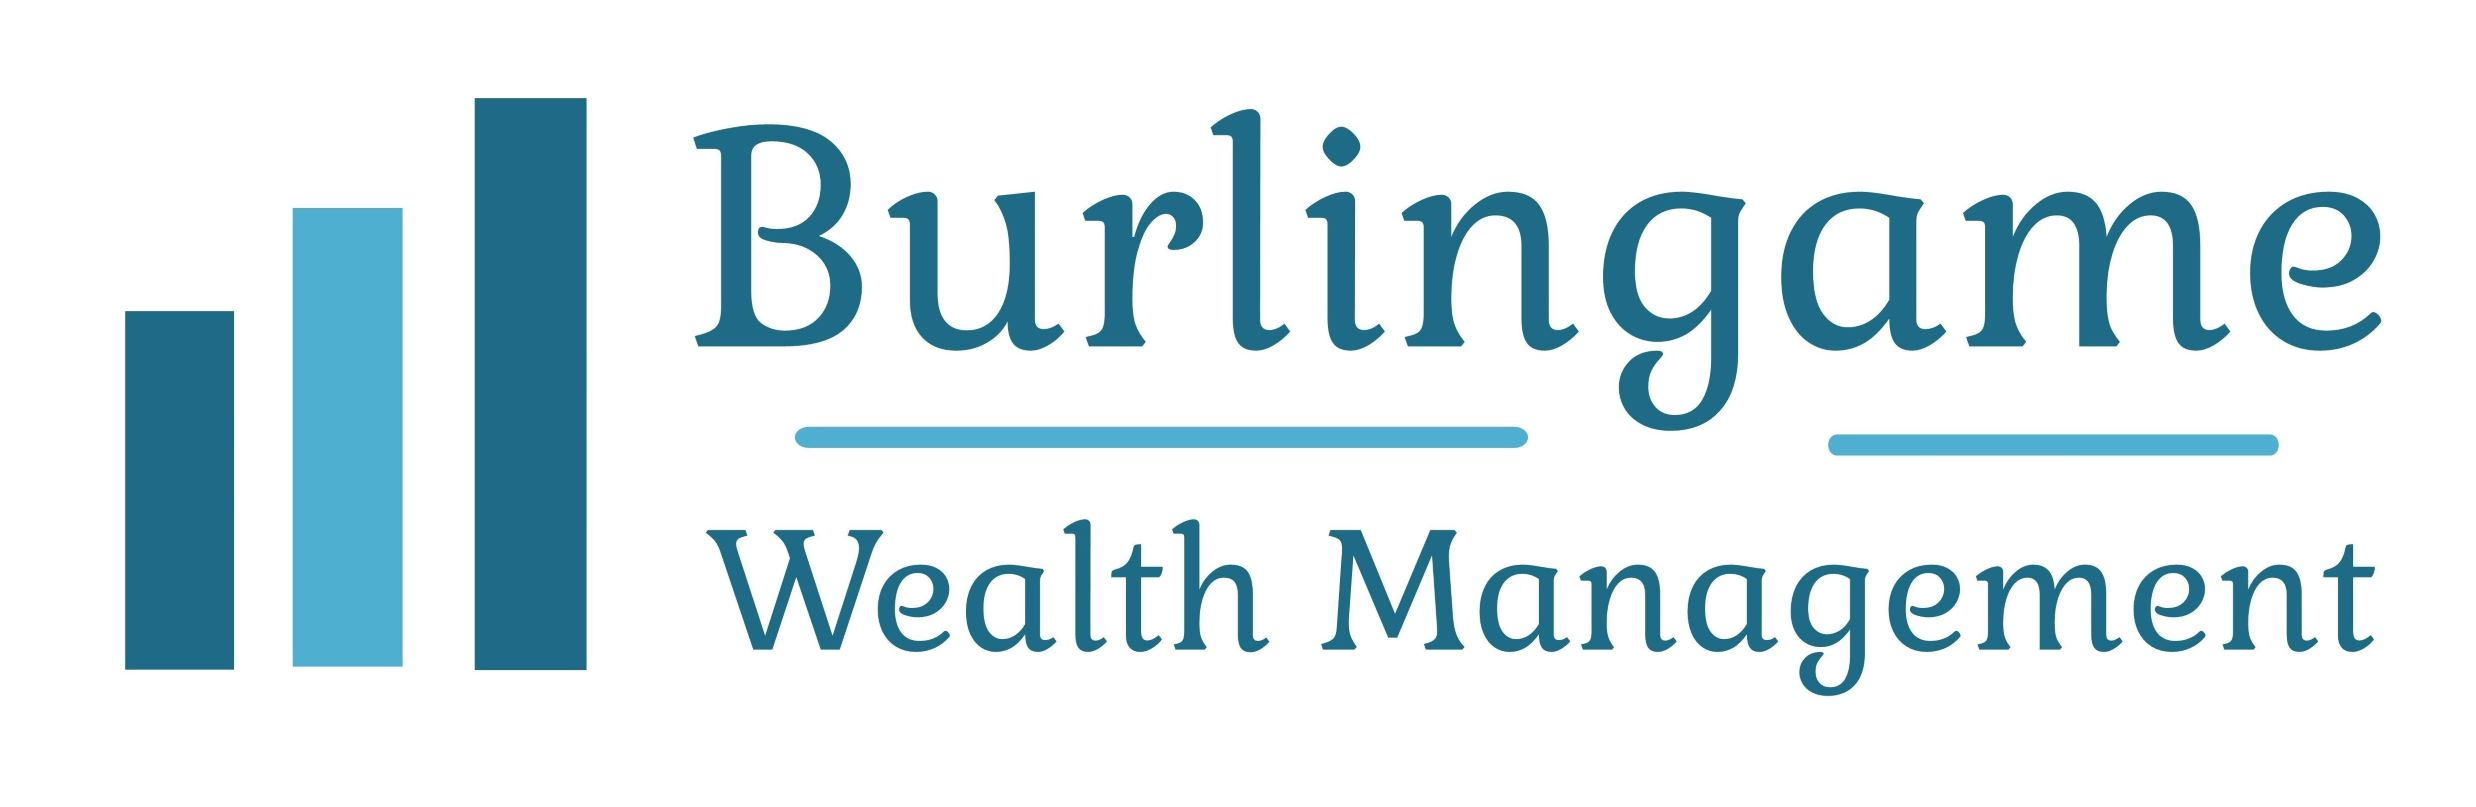 Burlingame Wealth Management (sm)